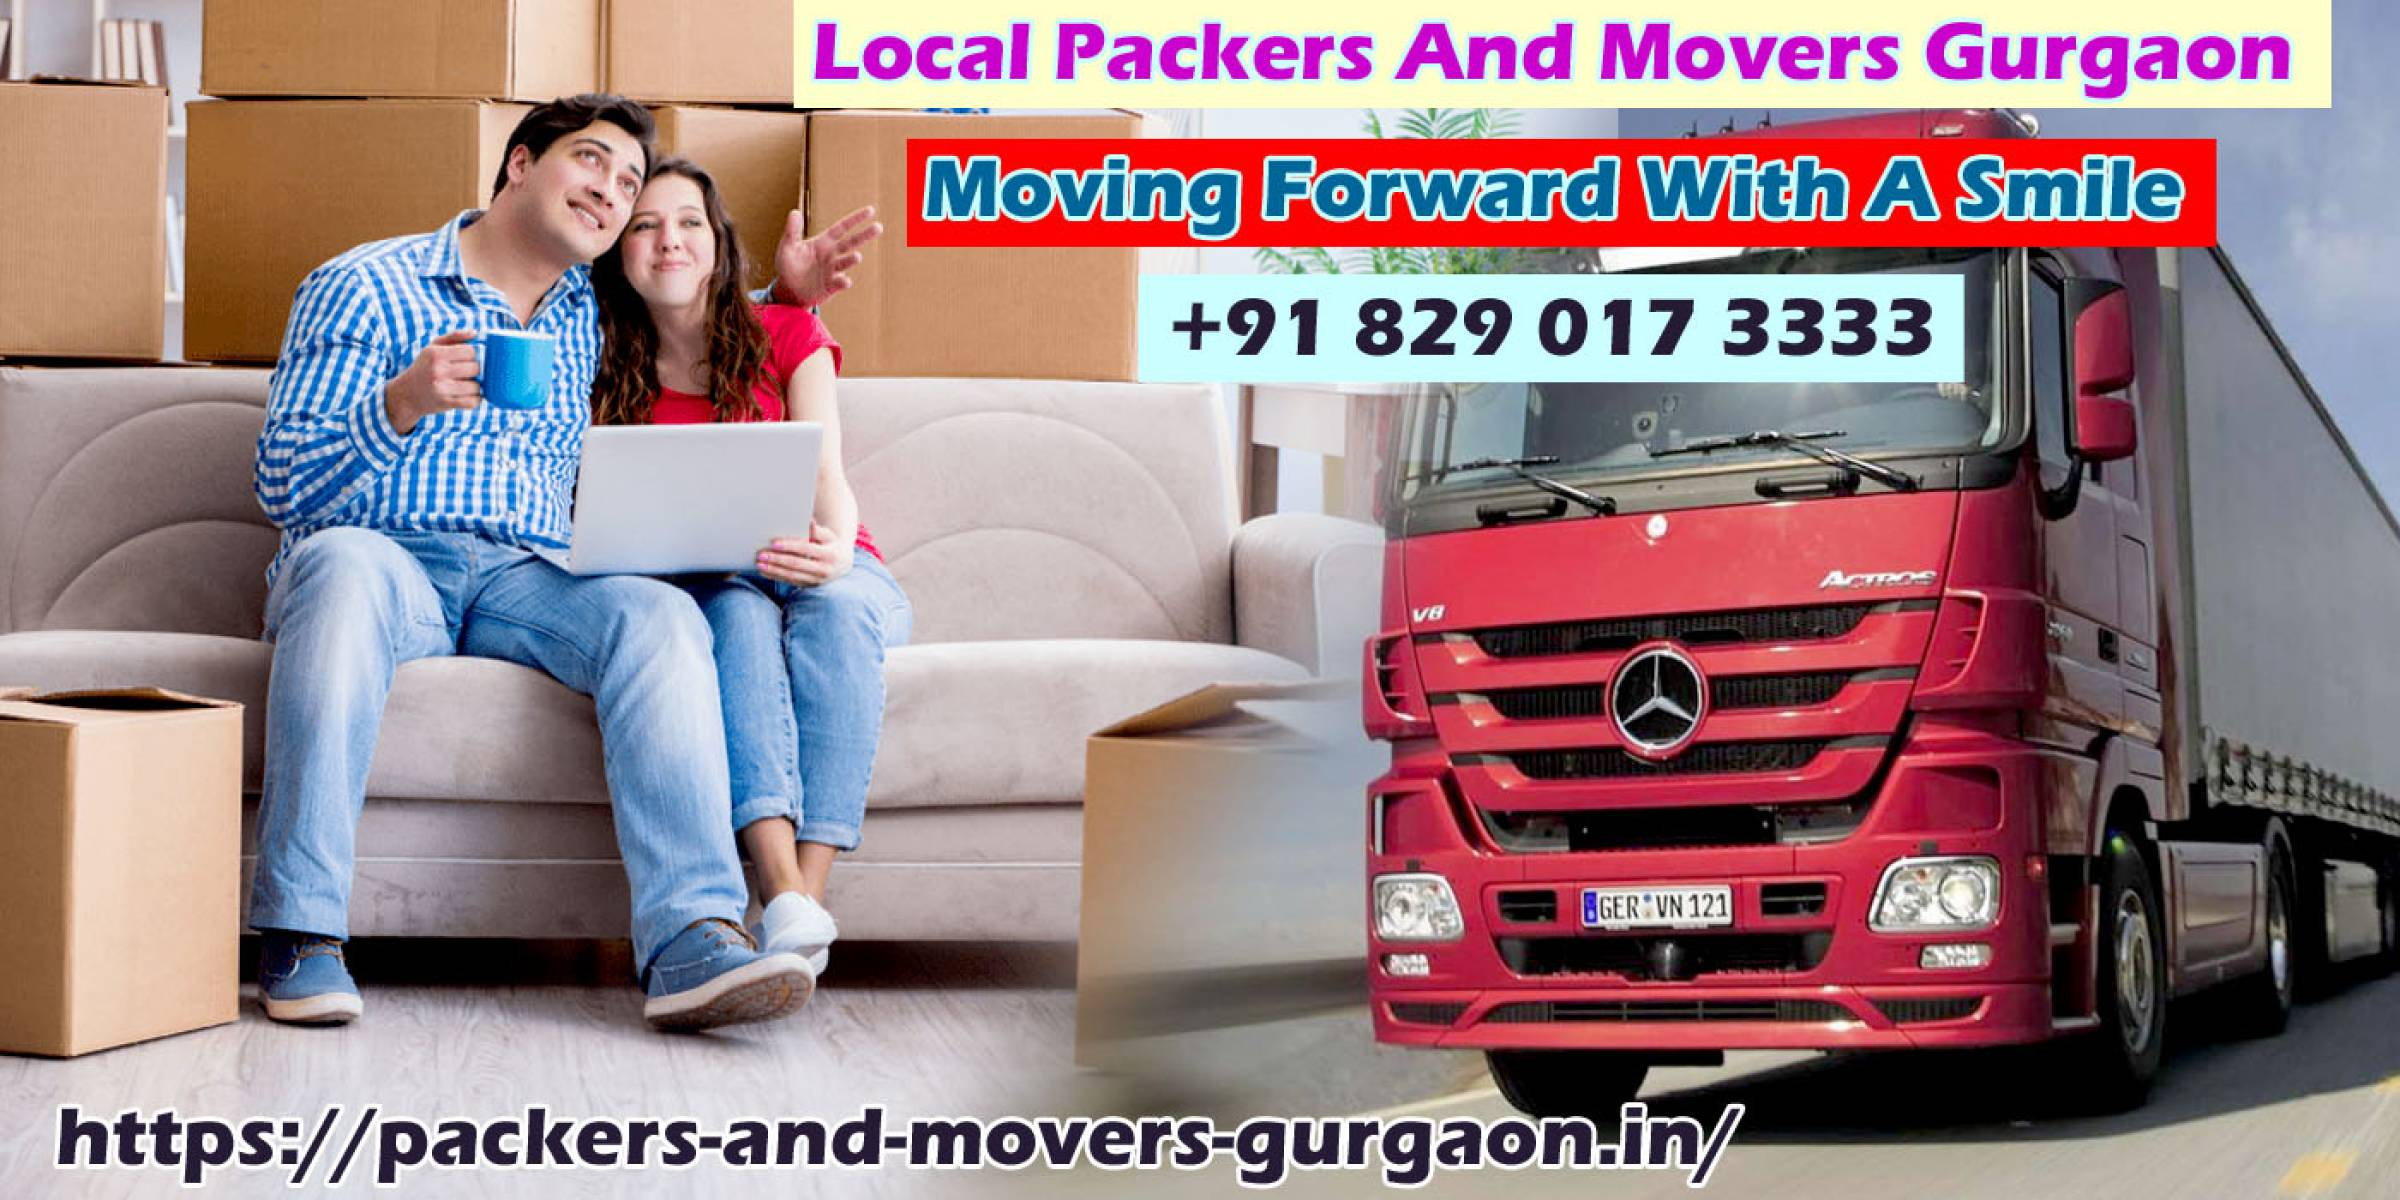 Hiring Packers And Movers Gurgaon Is Not Much Expensive